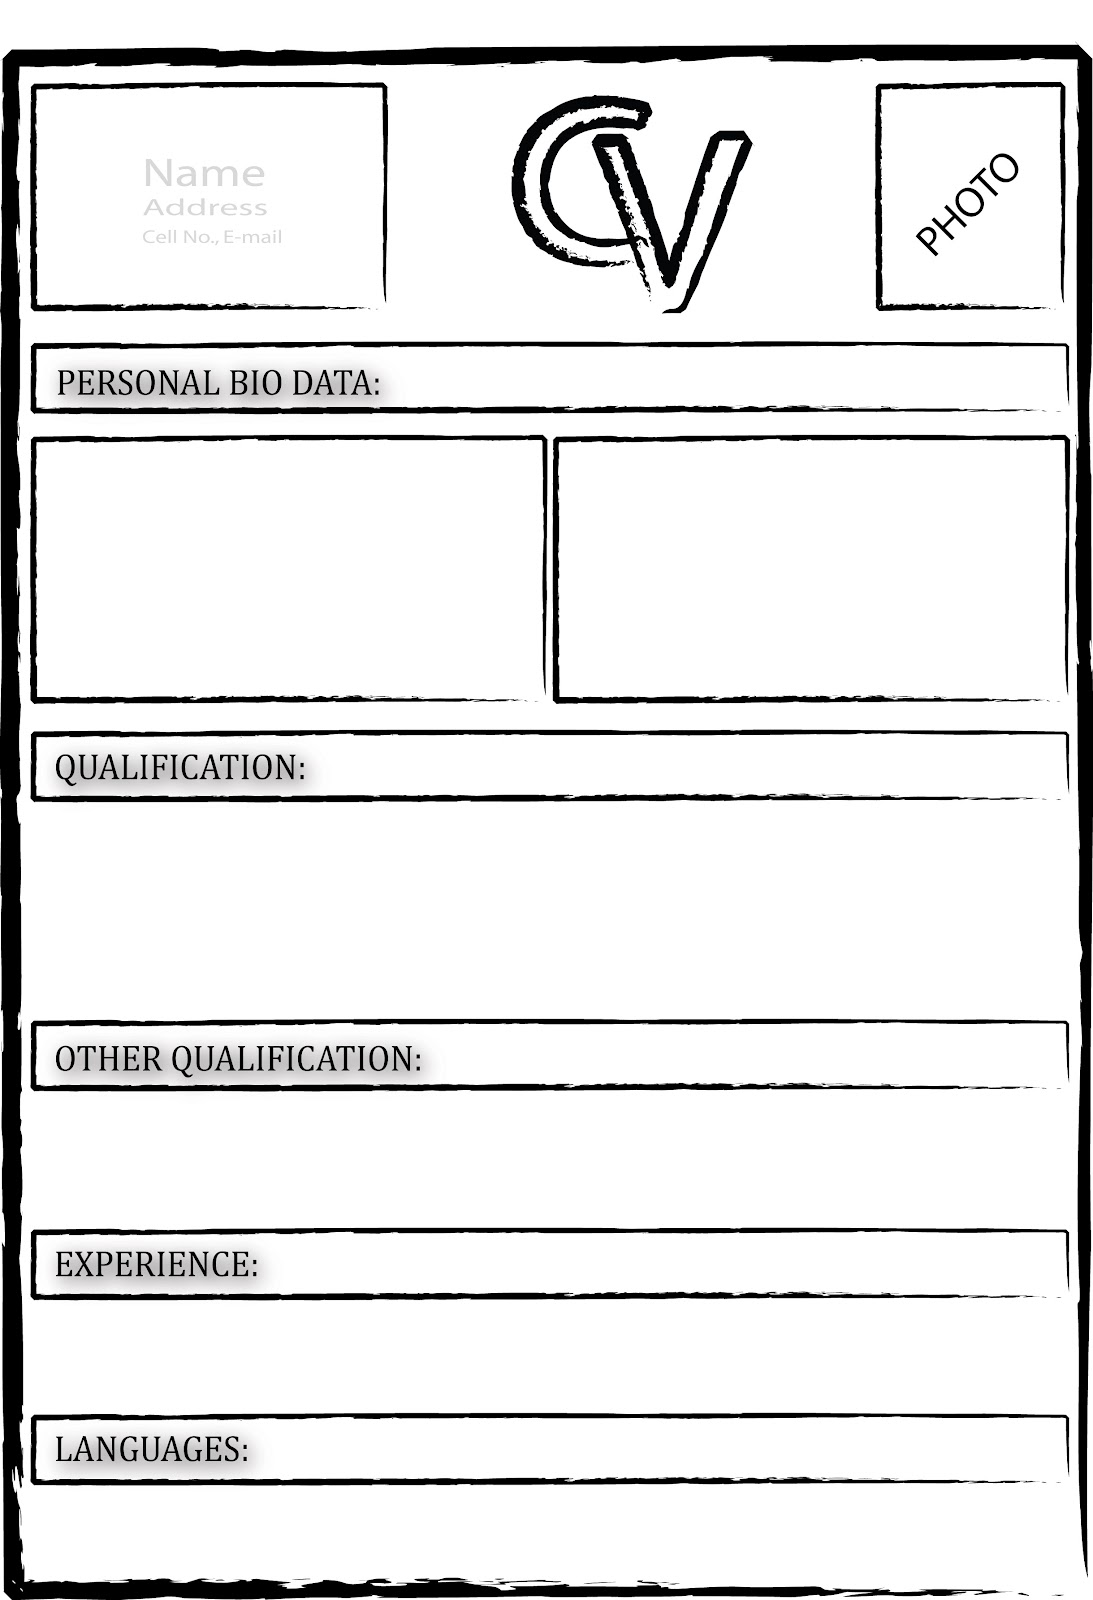 curriculum vitae blank form by - Free Blank Resume Templates Download